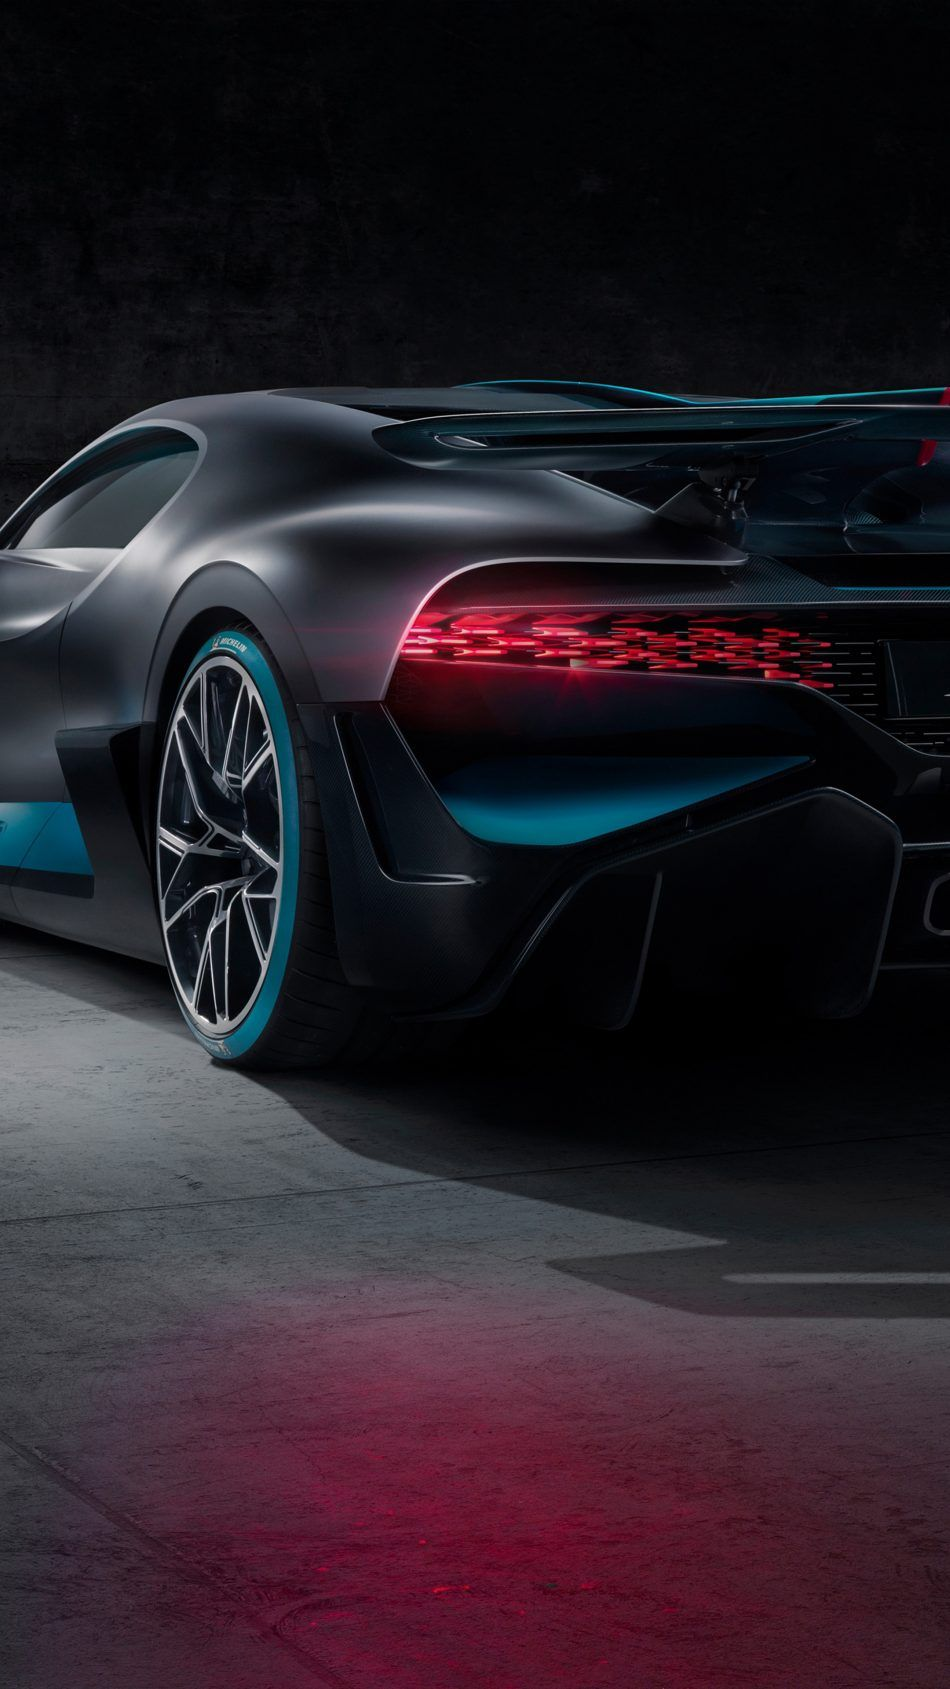 Bugatti Divo 2019 Car Wallpapers Bugatti Qhd Wallpaper Car